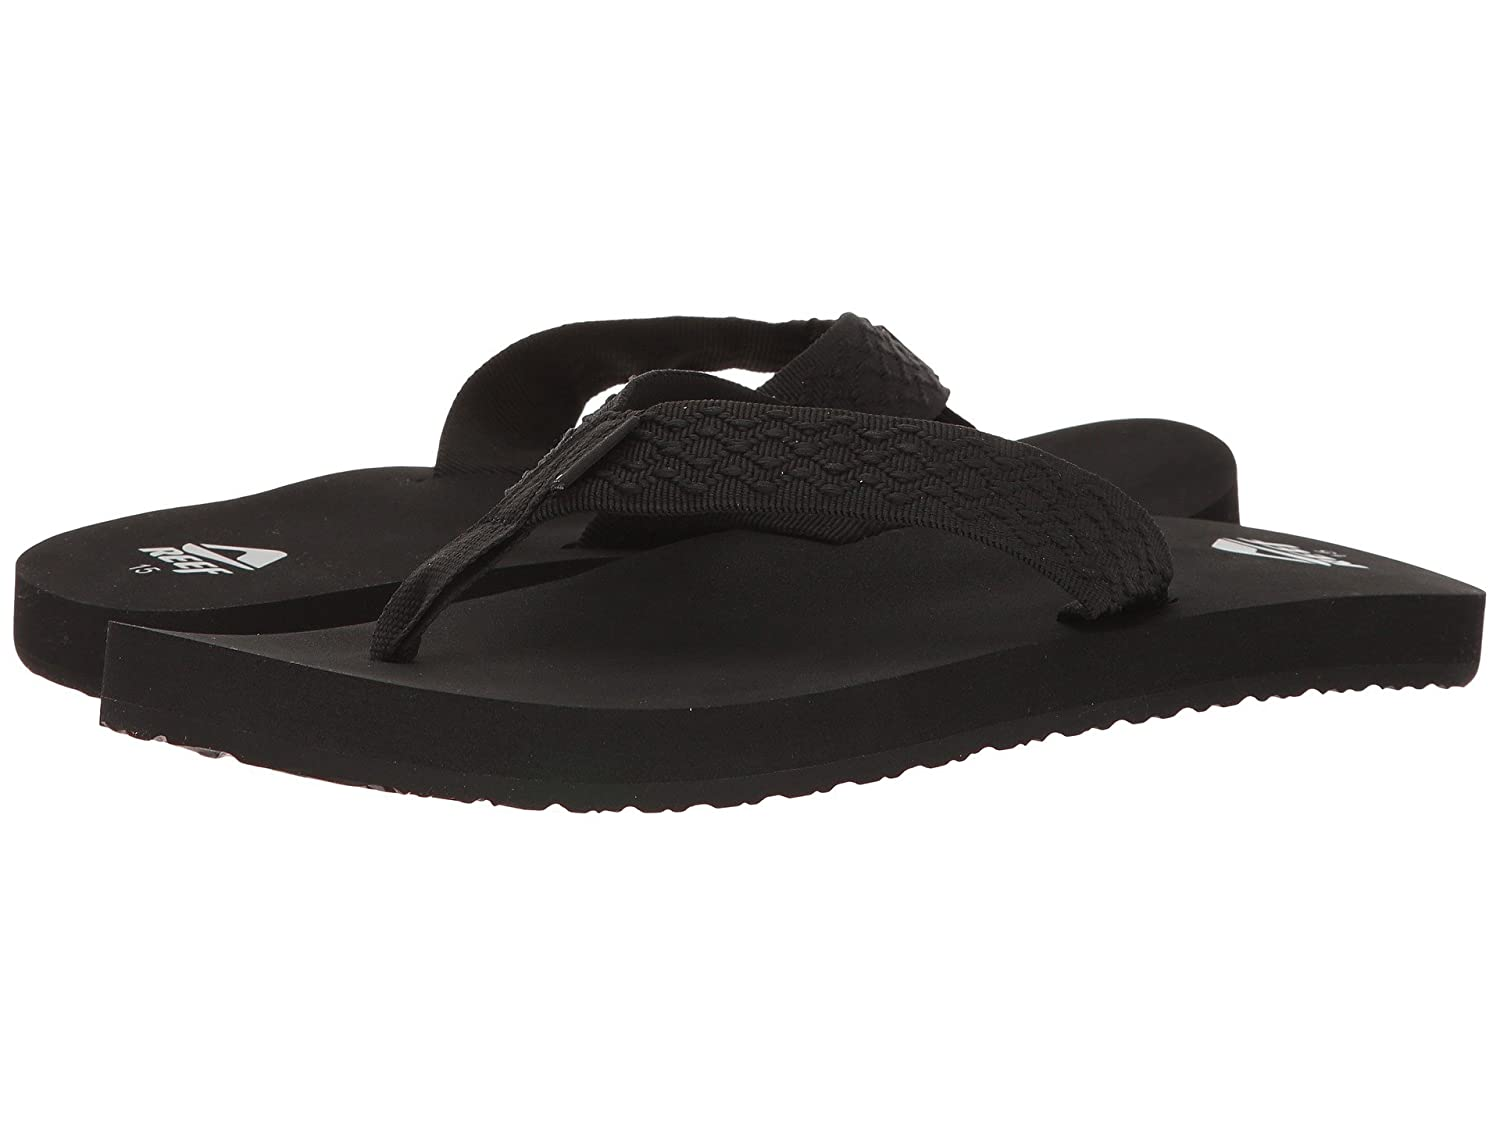 4c1a40c6fb35 Amazon.com  Reef Men s Smoothy Flip Flop  Shoes